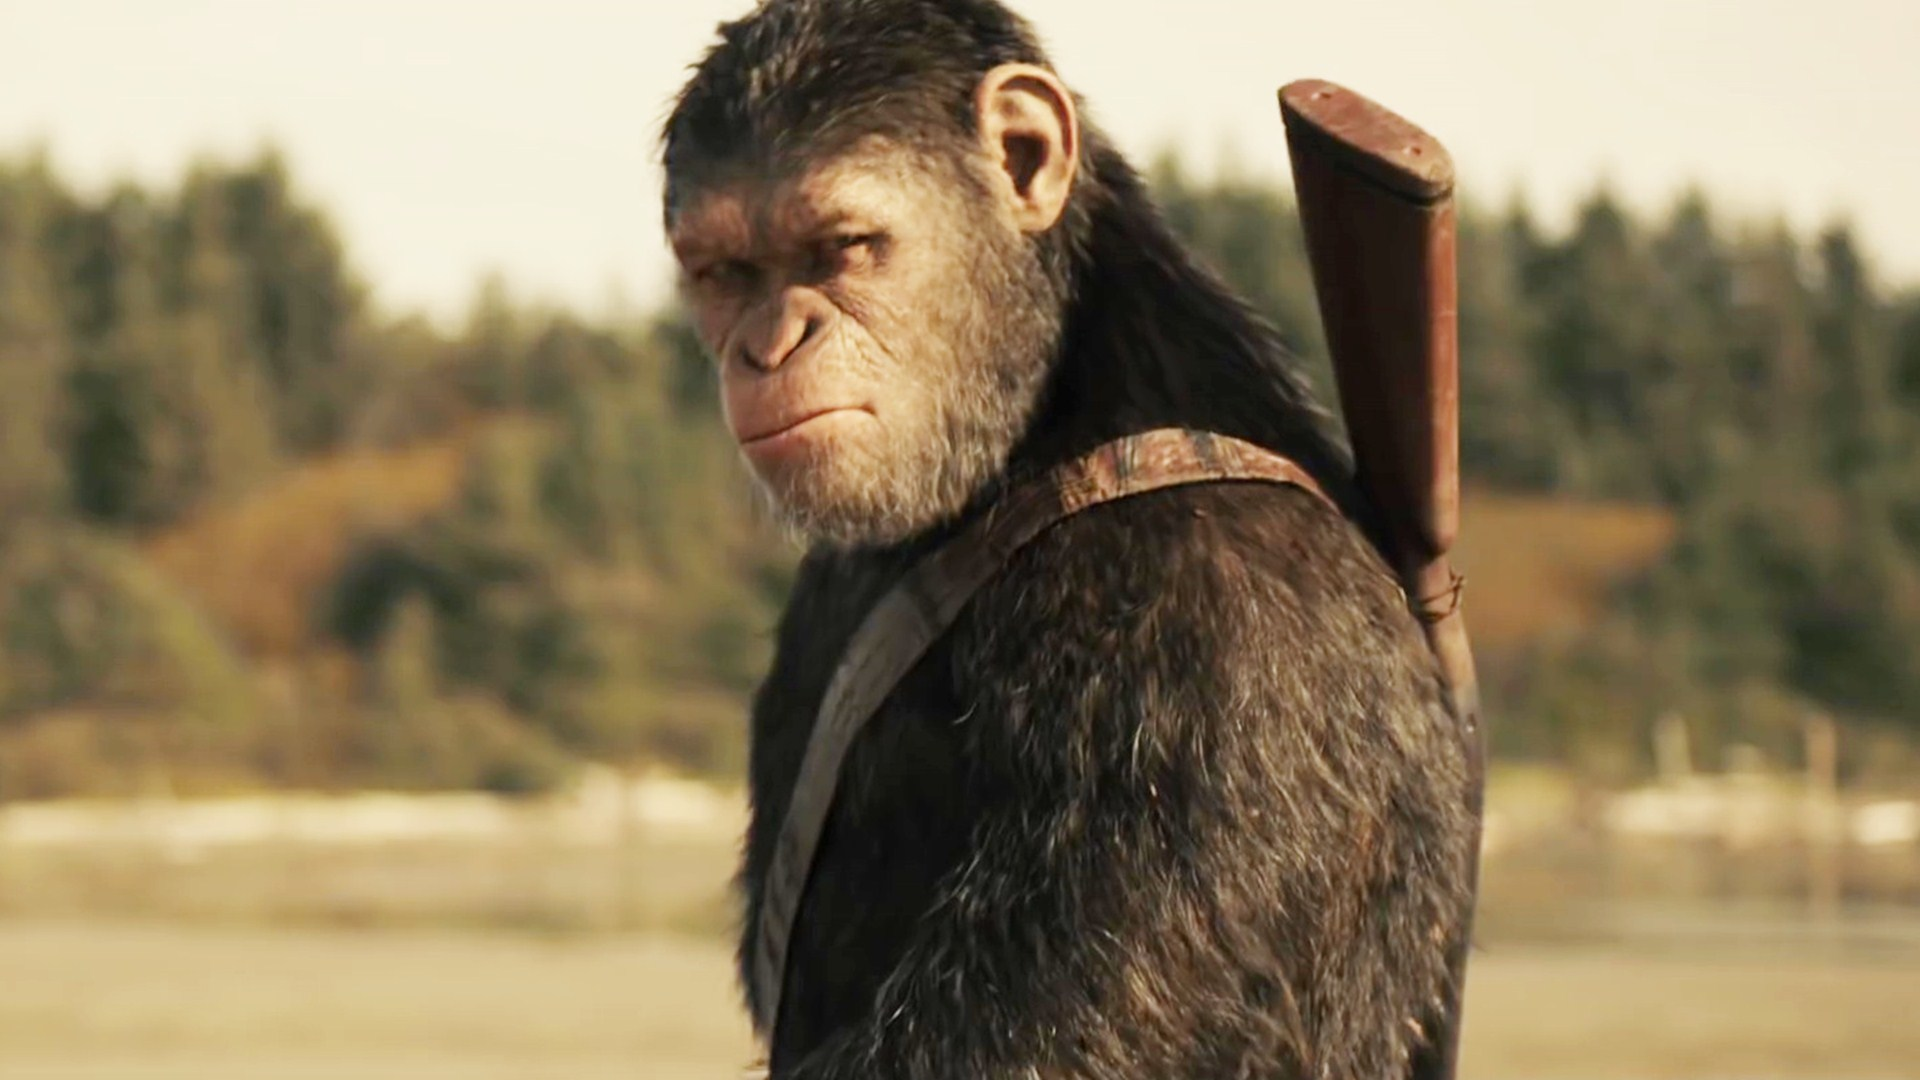 planet of the apes 2017 full movie free download